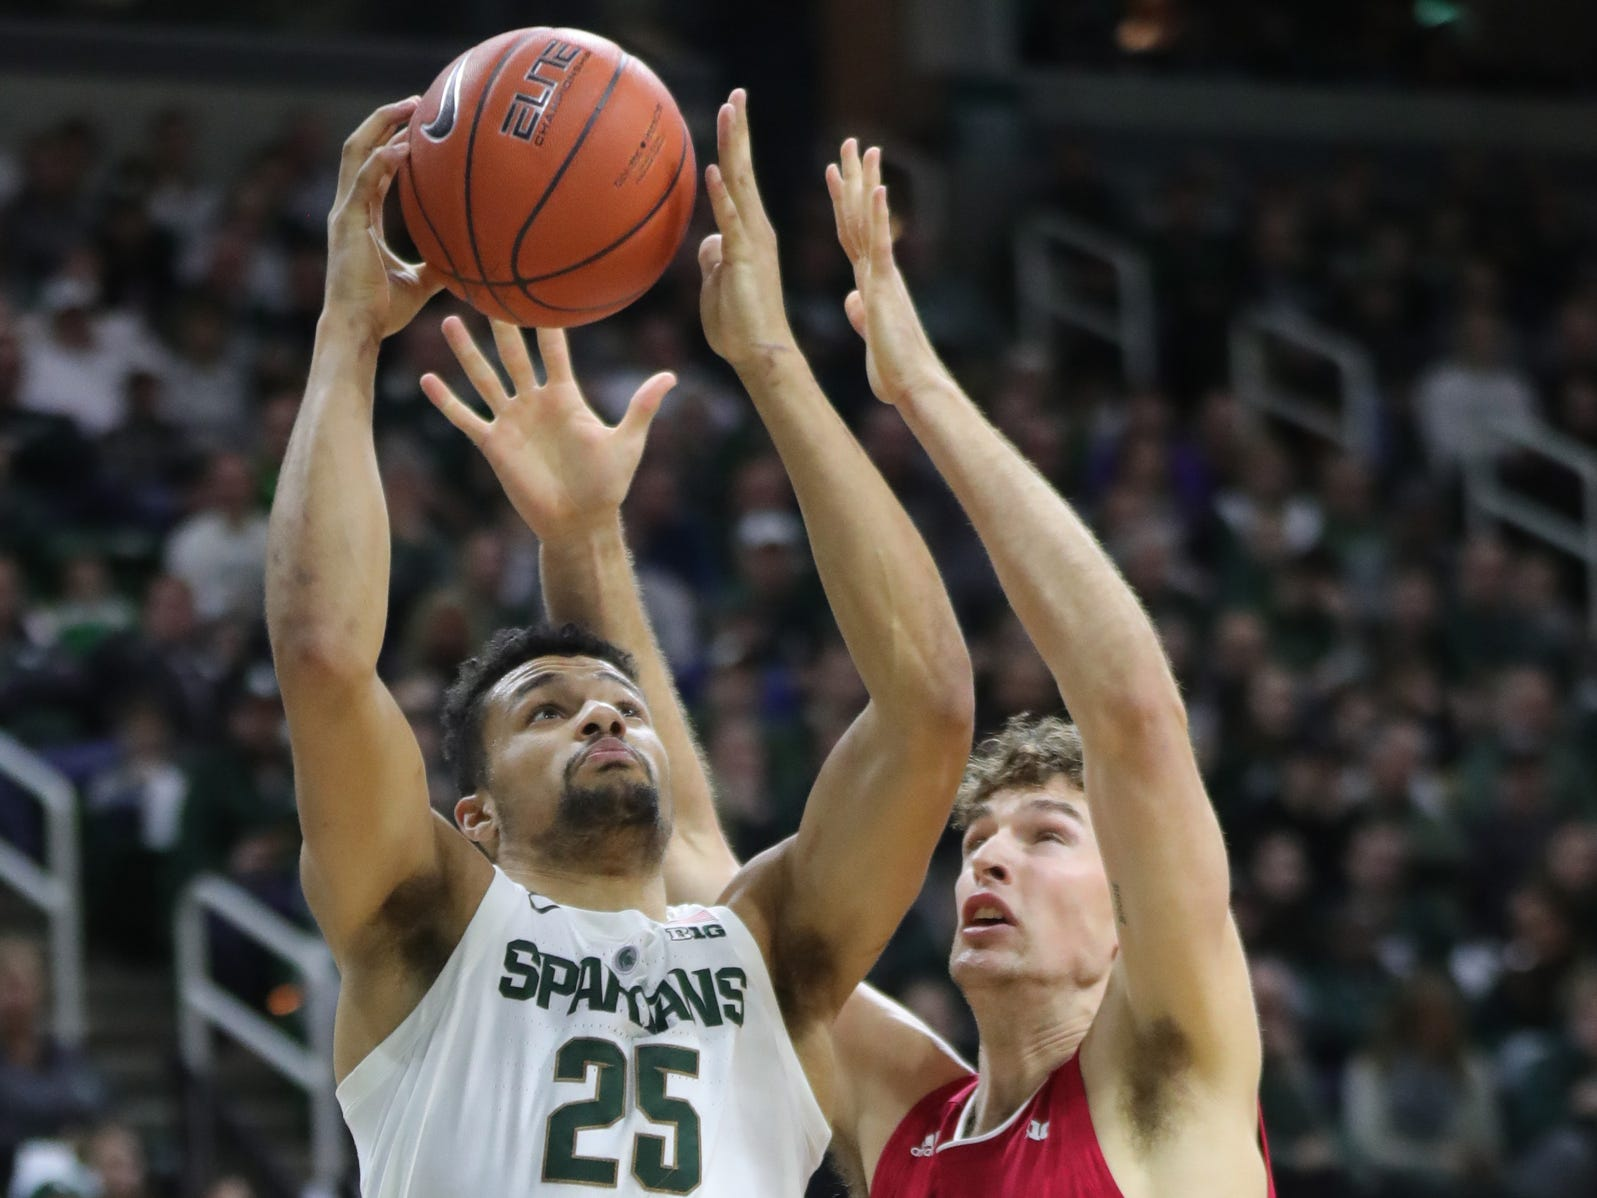 Michigan State forward Kenny Goins drives against Indiana forward Evan Fitzner during the first half of the 79-75 overtime loss to Indiana on Saturday, Feb. 2, 2019, in East Lansing.